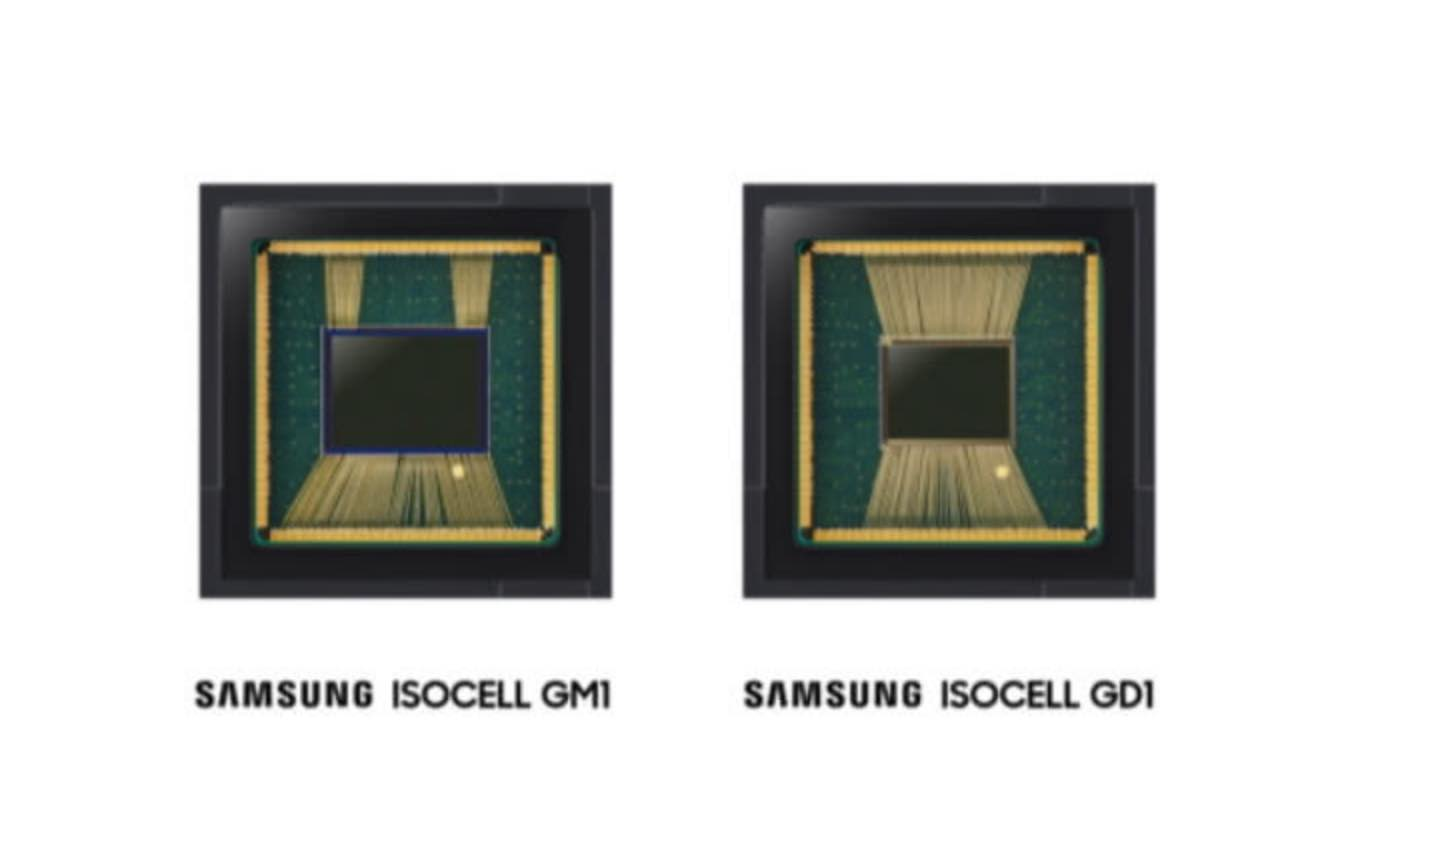 Mobile phone photos into the 48MP era! Samsung introduced two sensors that support pixel 4-in-1